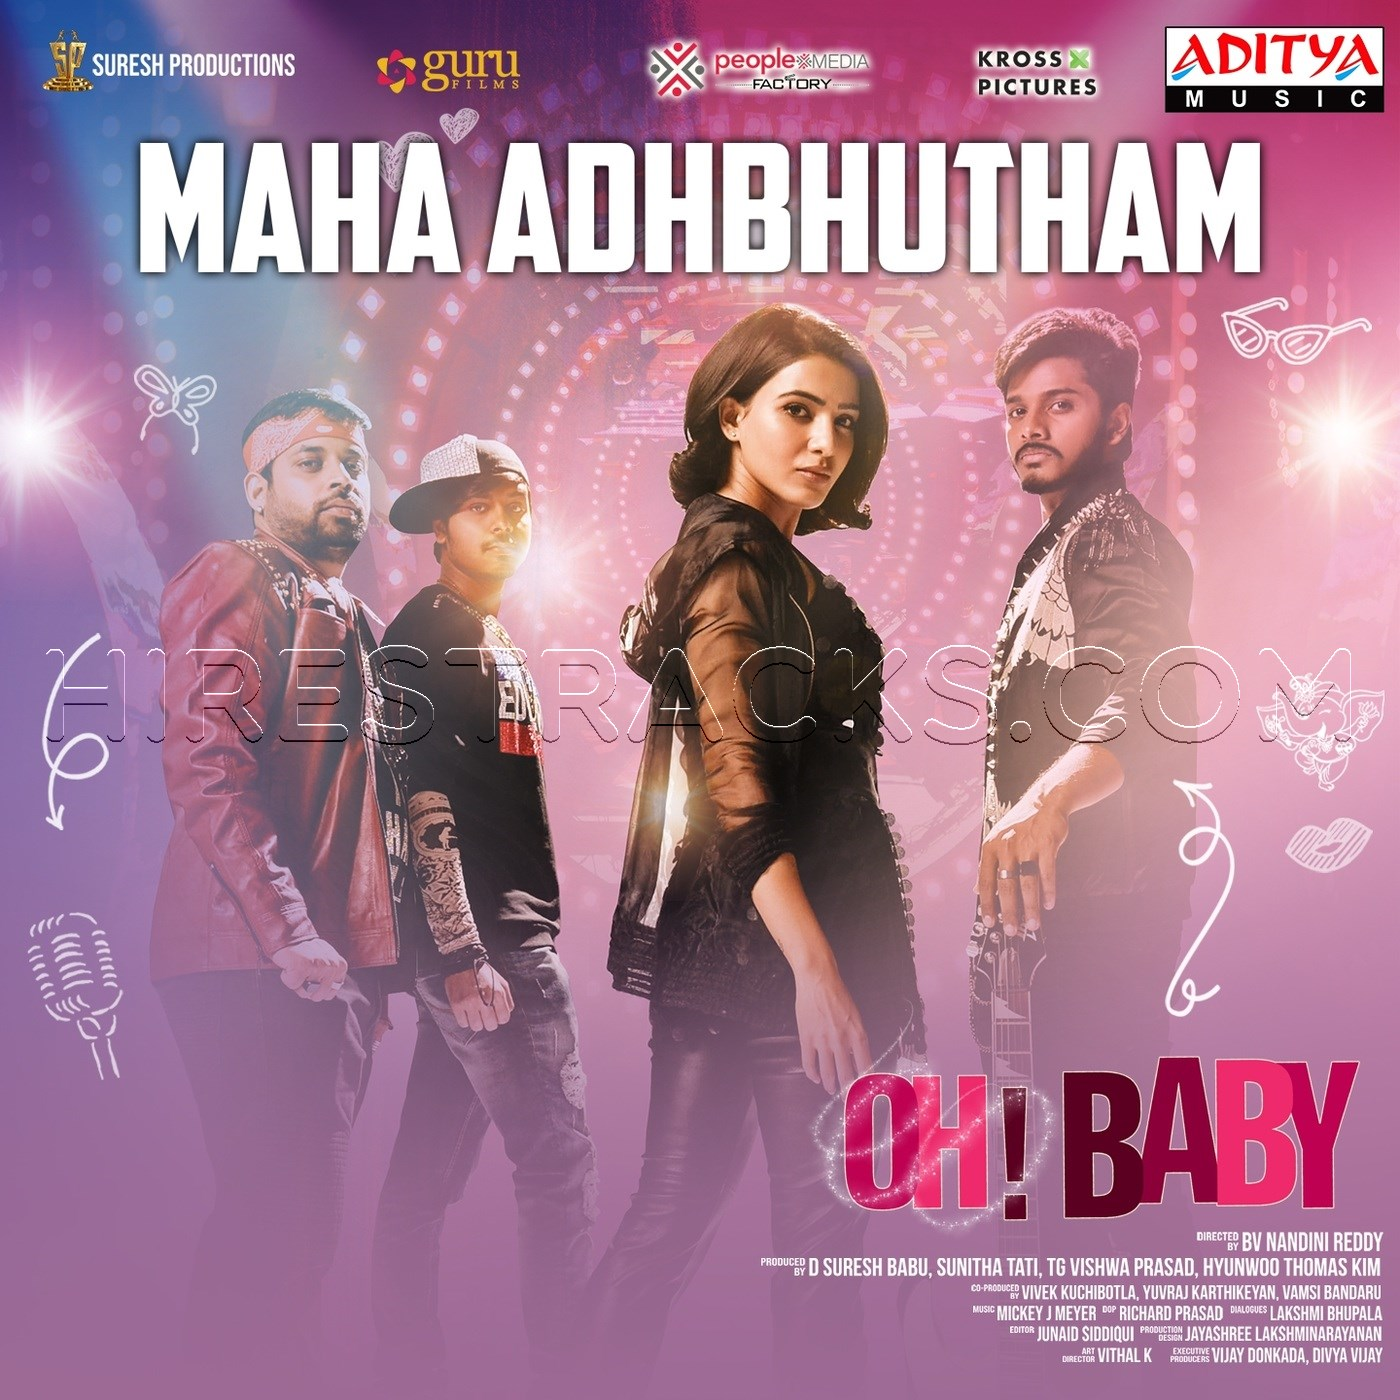 Maha Adhbhutham (From Oh Baby) (2019)